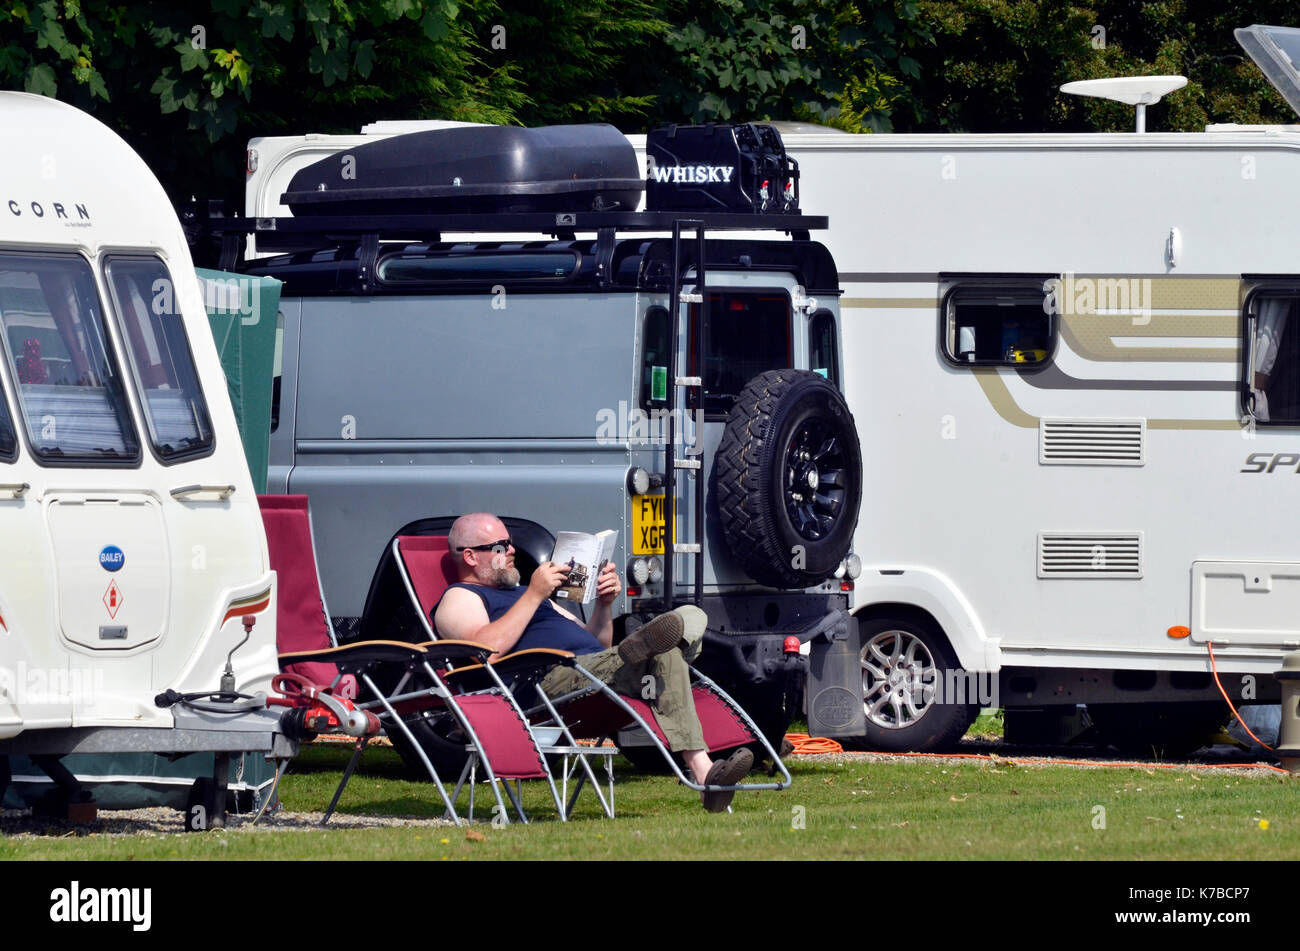 man on holiday sitting relaxing reading a book outside caravan - Stock Image